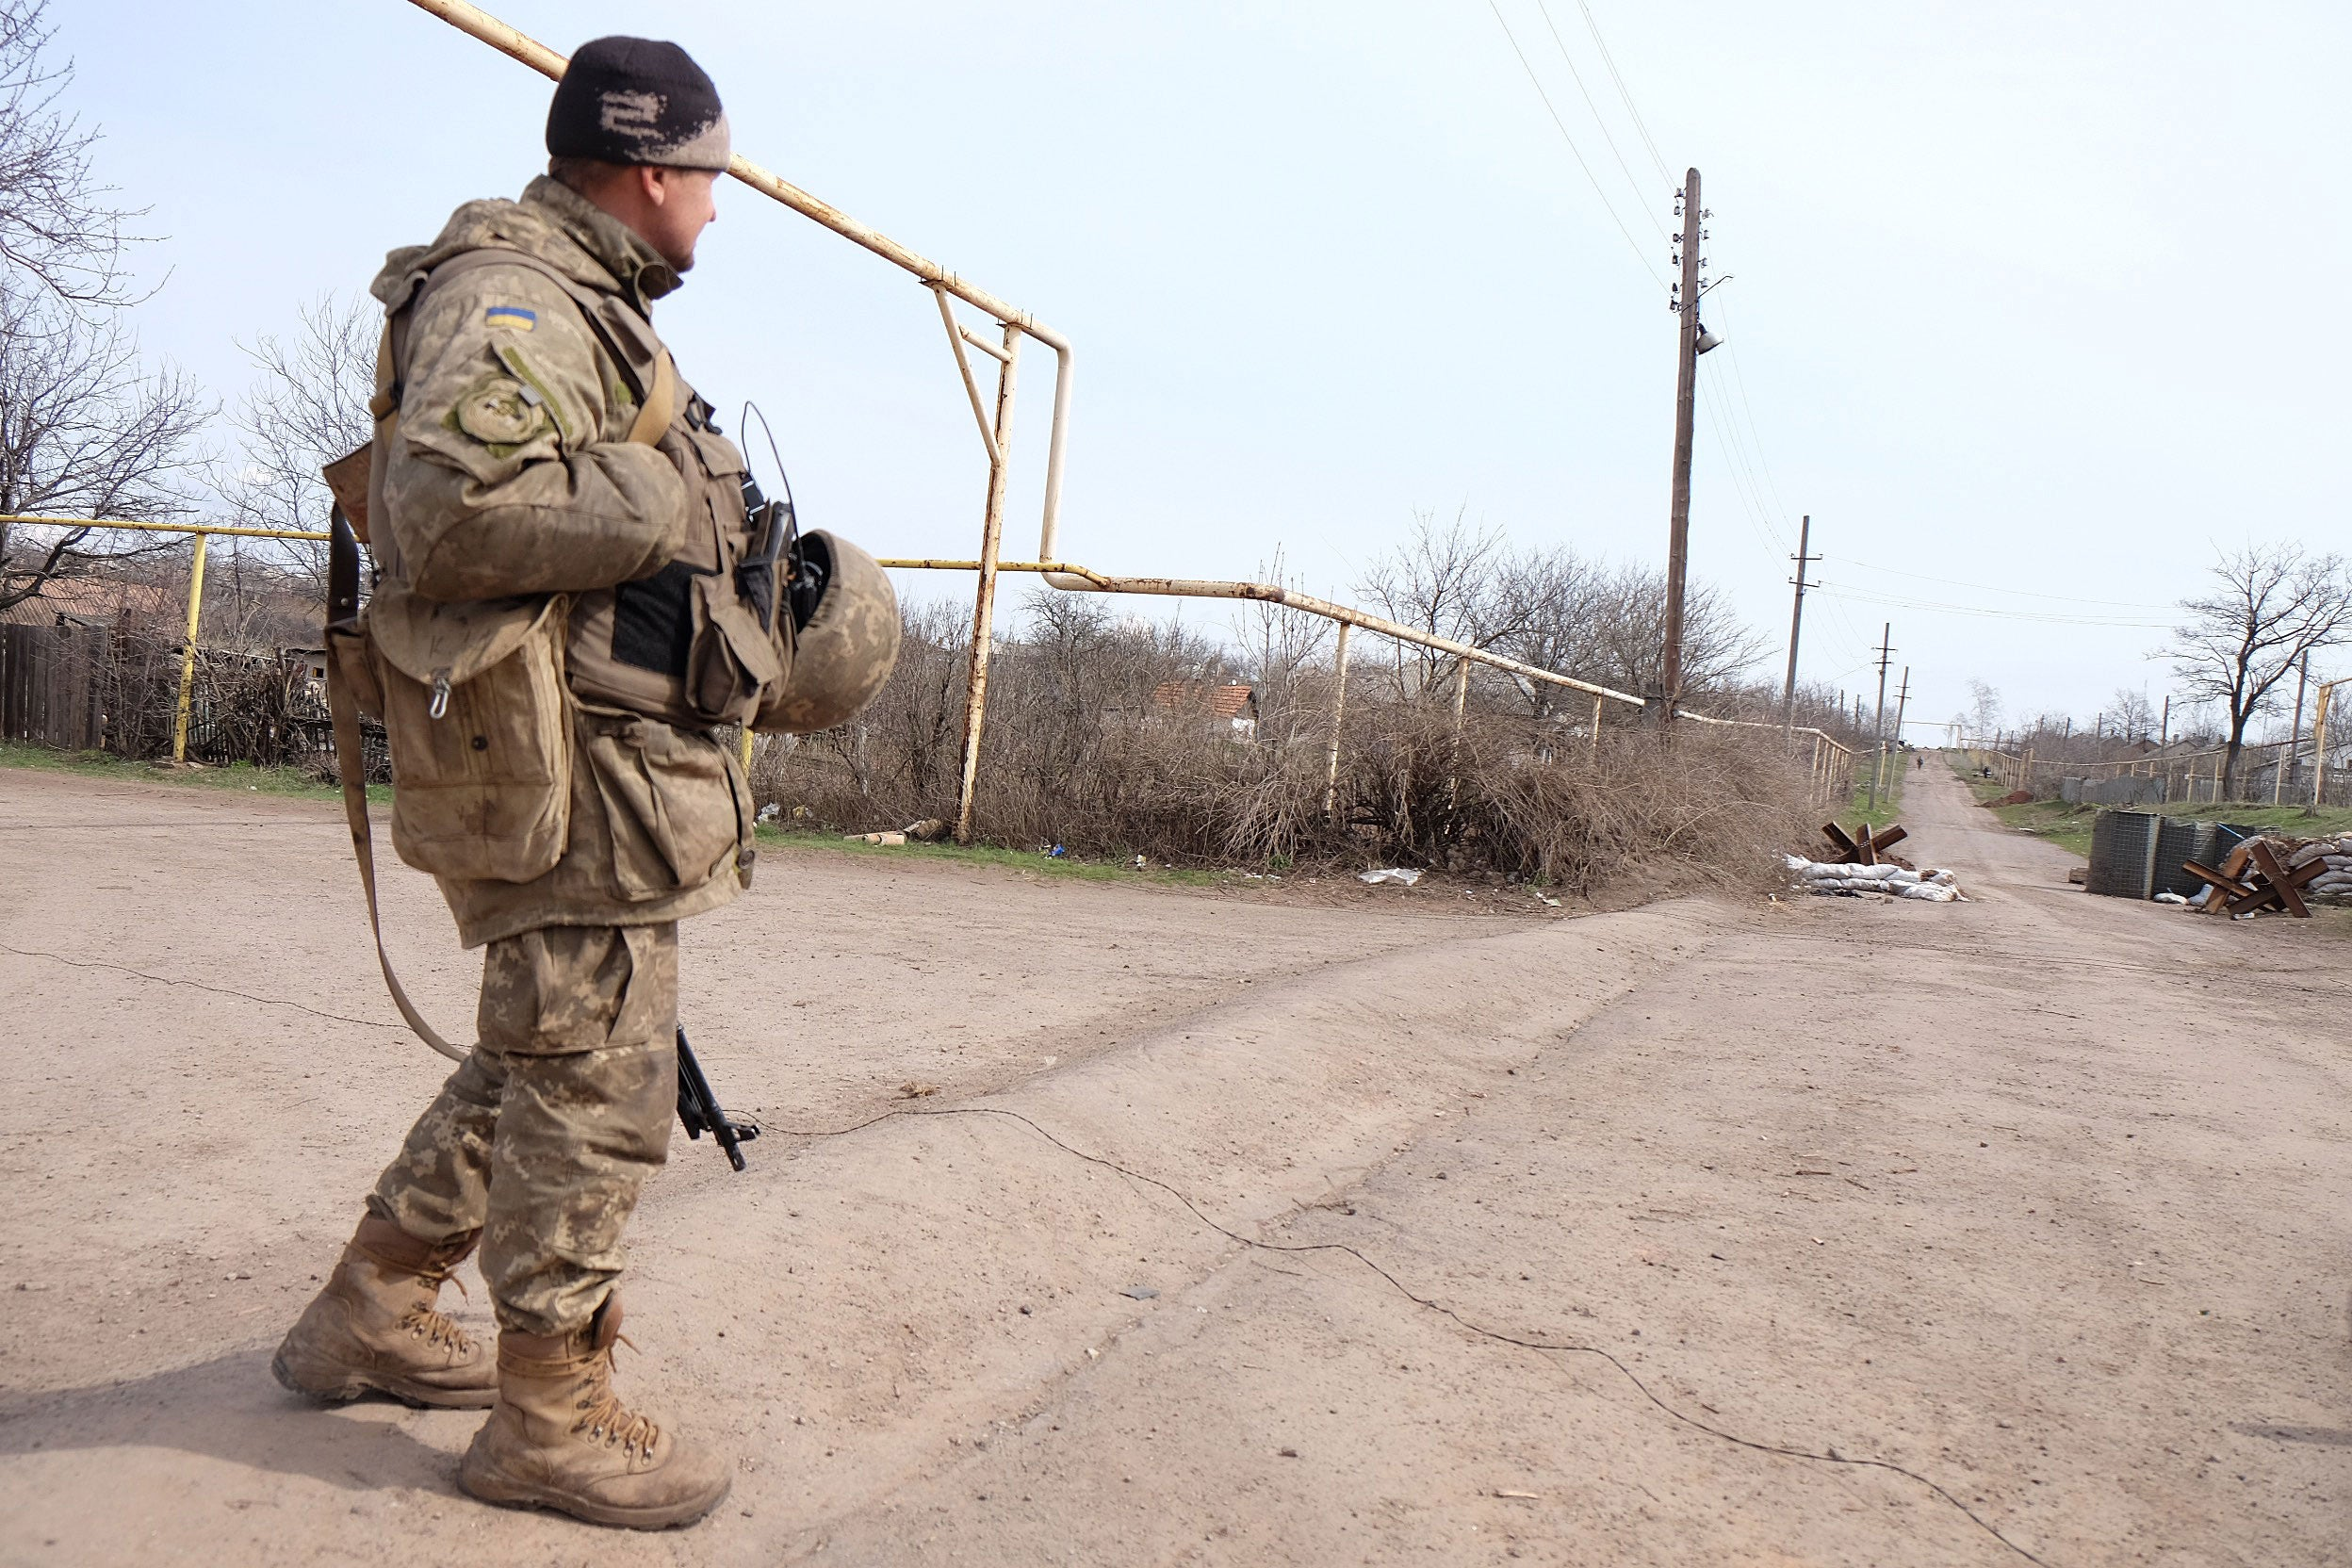 A Ukrainian soldier walks on the front lines in front of separatist positions, Zaitseve, Ukraine, April 4, 2016. (Photo: Jonathan Alpeyrie/Polaris/Newscom)